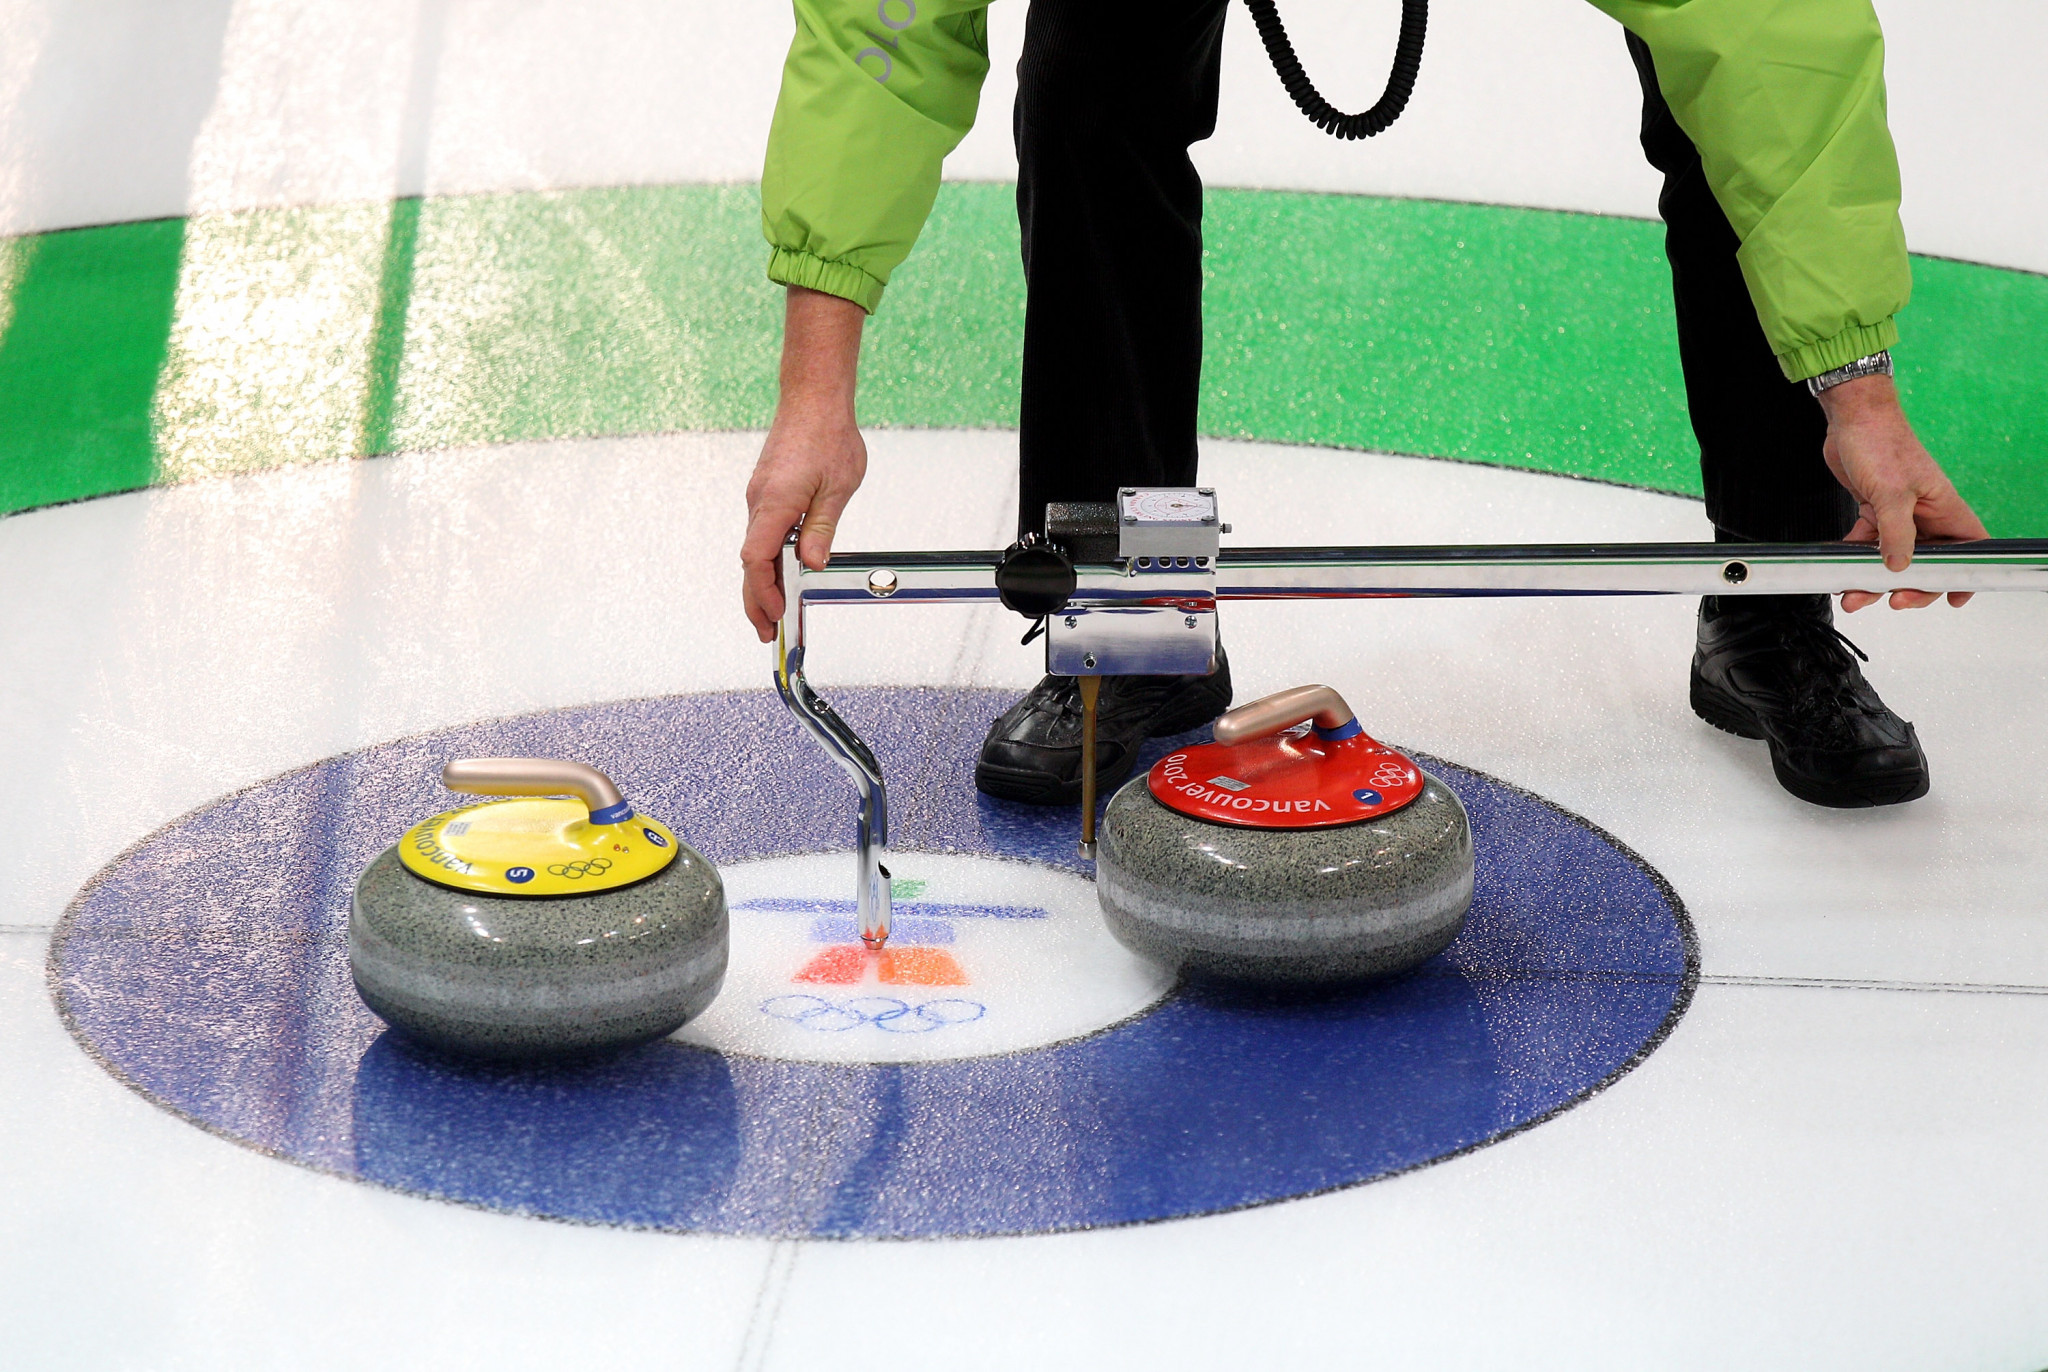 Five people have been appointed to the World Curling Federation Nominations Committee ©Getty Images